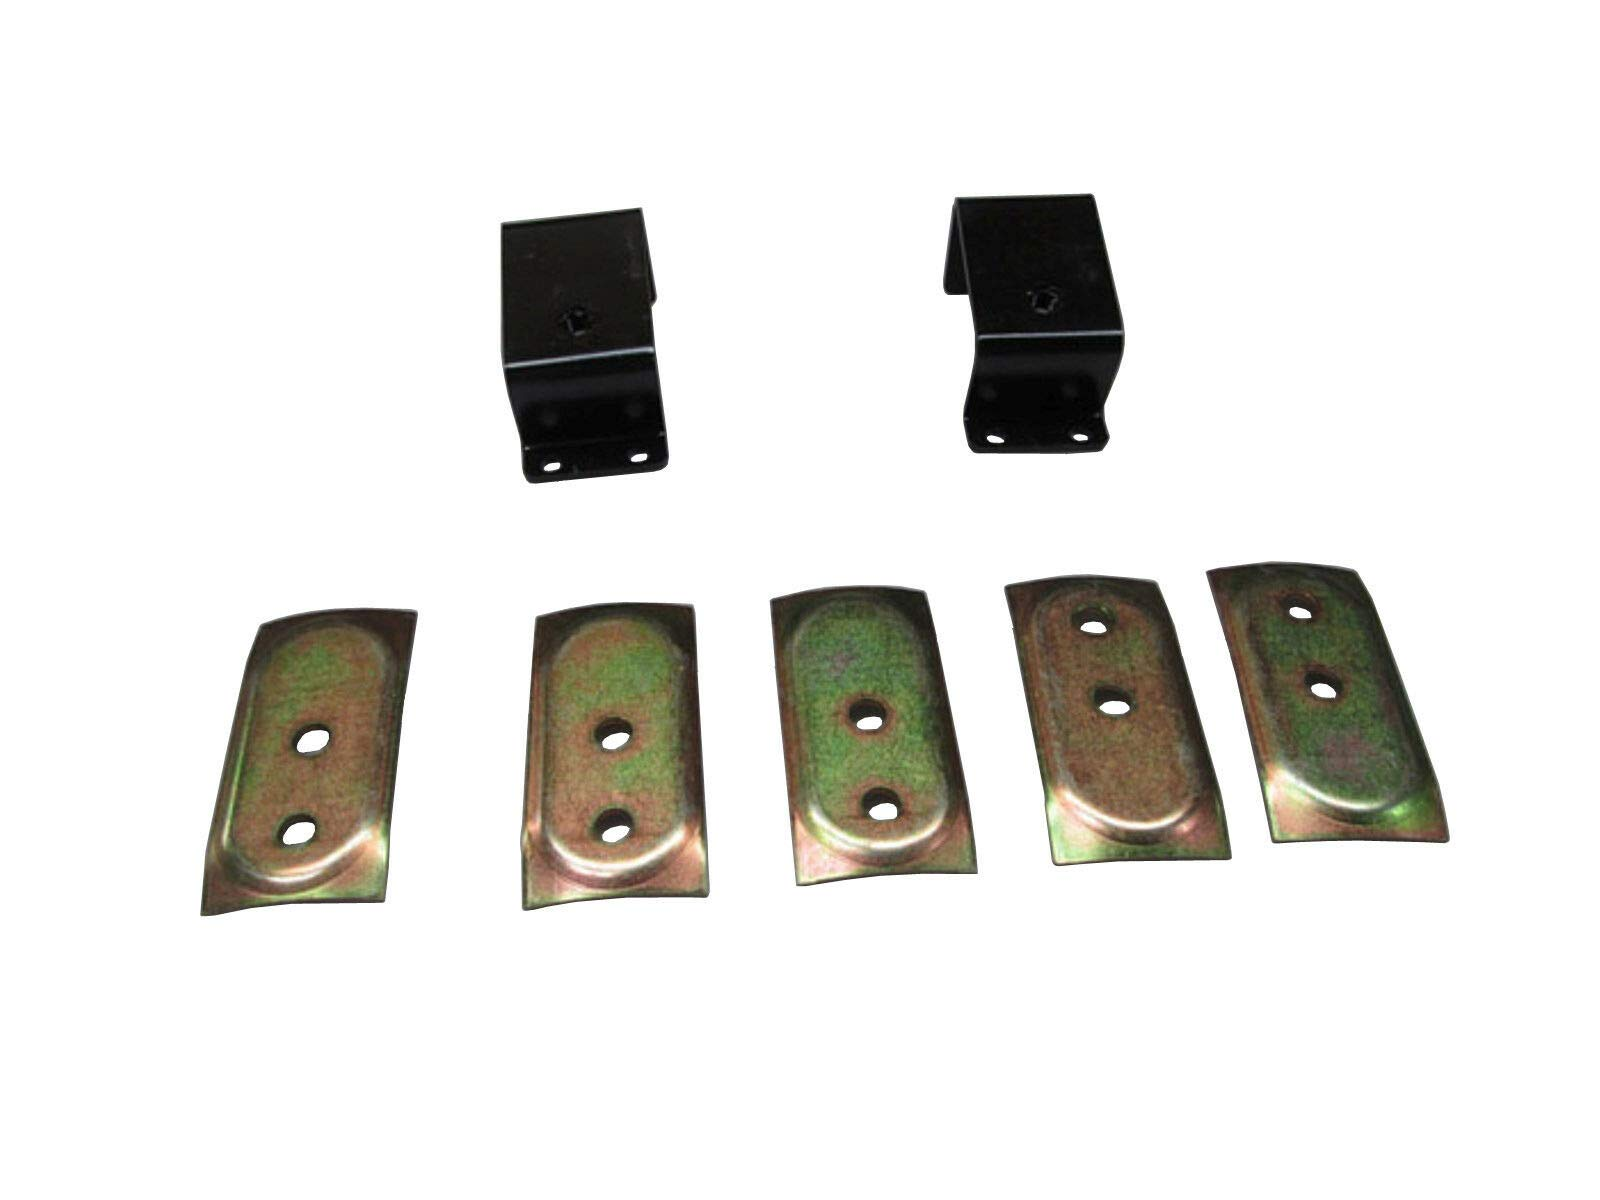 AUTO PARTS LAB Adnik 569850 Seat Adapter Mount Brackets Kit by AUTO PARTS LAB (Image #1)